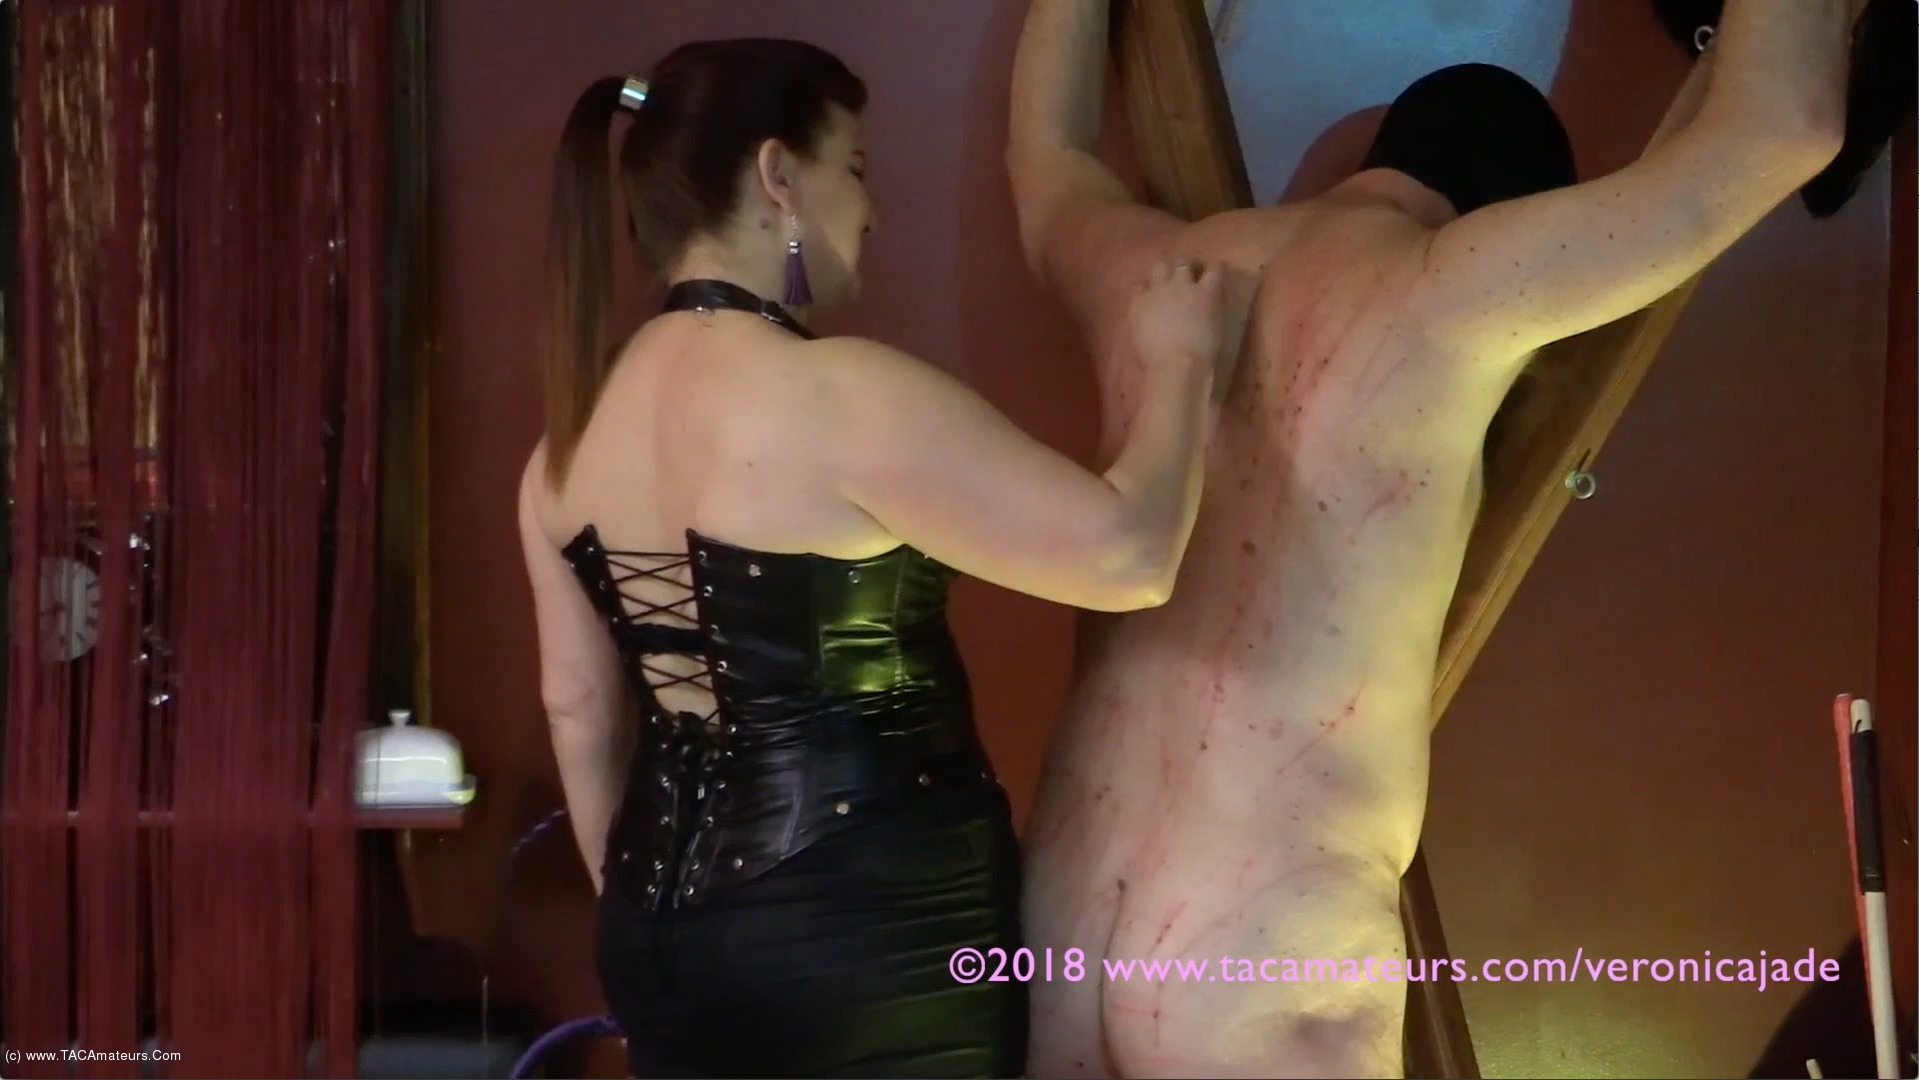 VeronicaJade - Whipping Time Pt2 scene 0